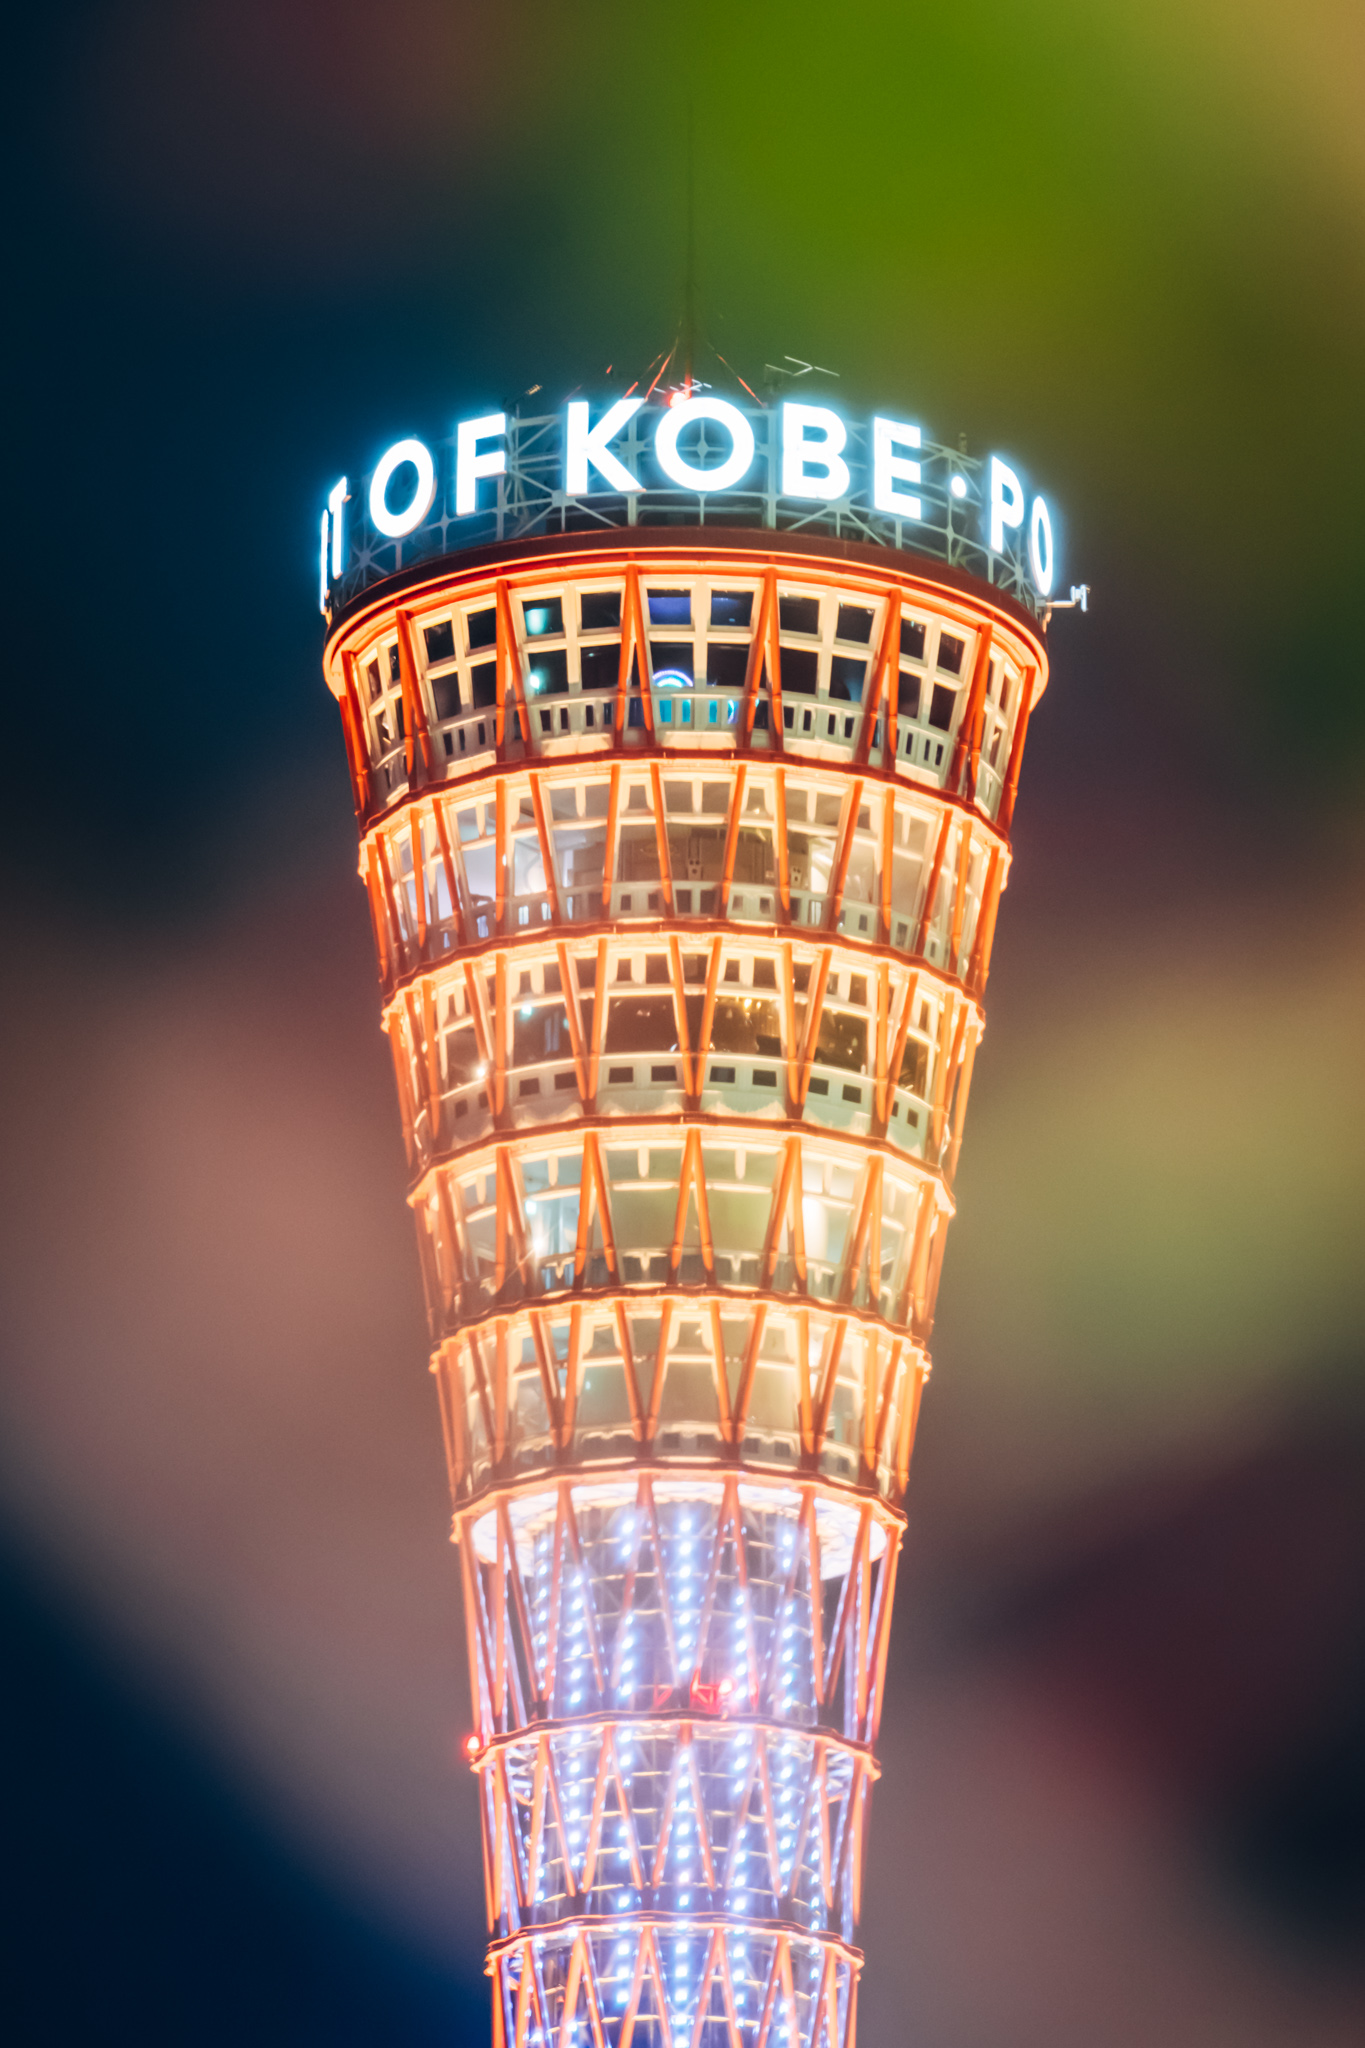 神戸ポートタワー – Kobe Port Tower, Hyogo